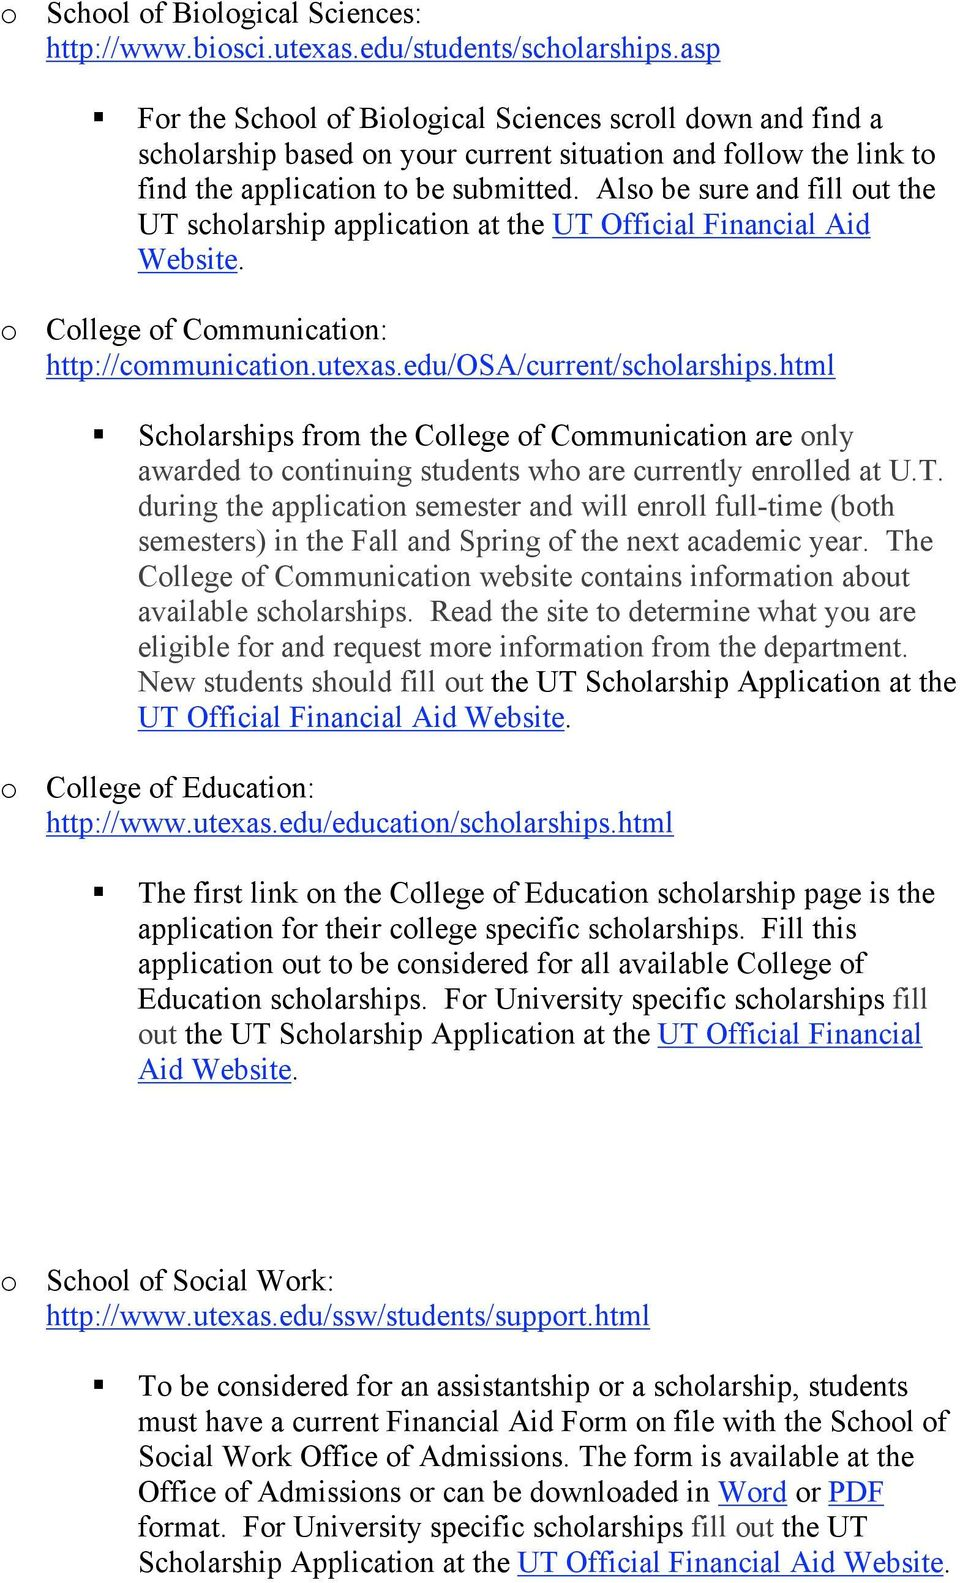 Also be sure and fill out the UT scholarship application at the UT Official Financial Aid Website. o College of Communication: http://communication.utexas.edu/osa/current/scholarships.